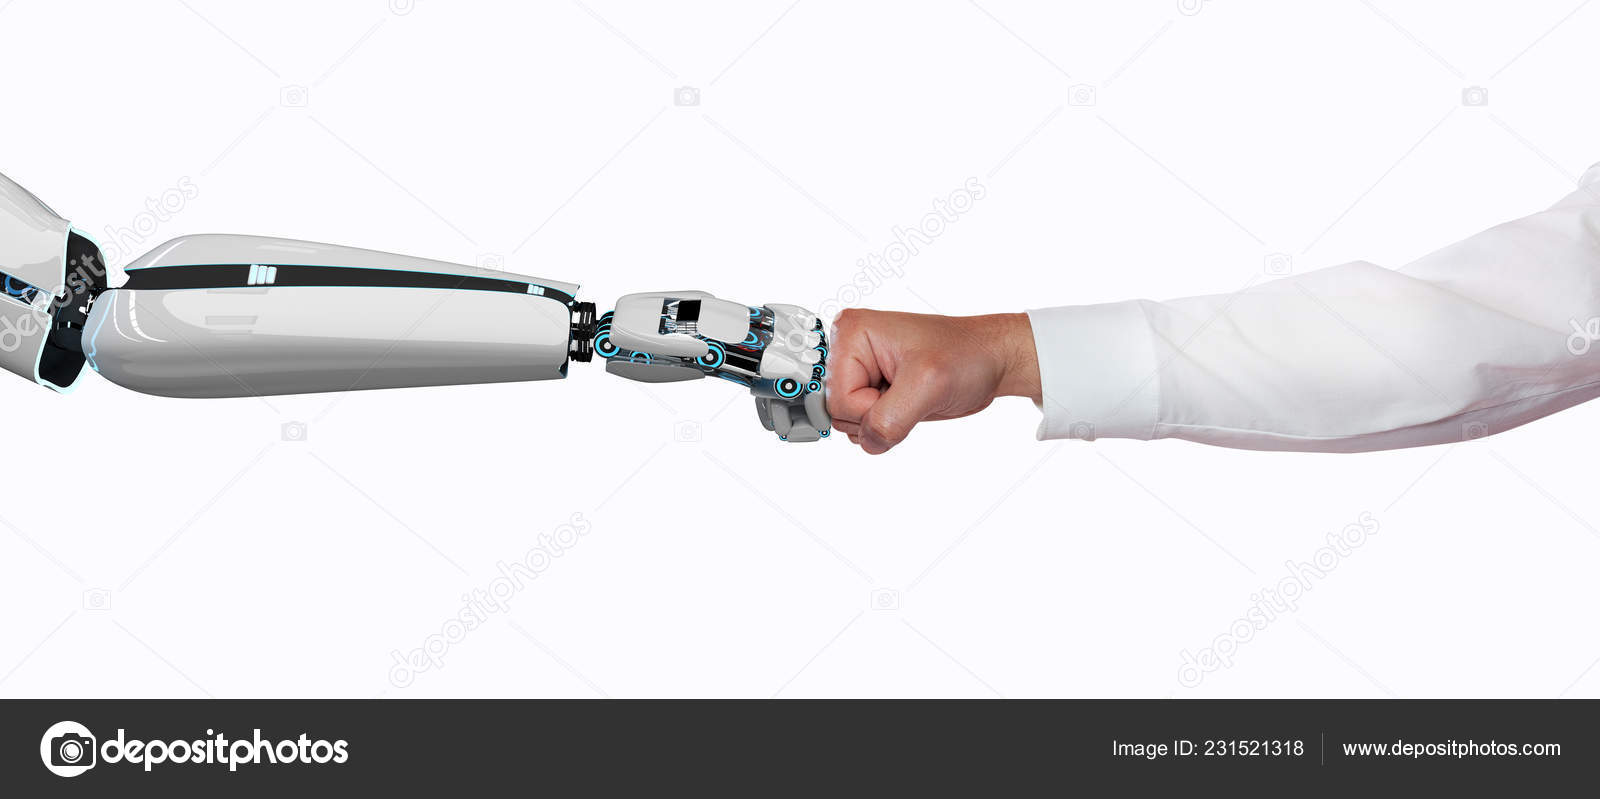 Robot Hand Human Hand Touch Each Other Fists Illustration